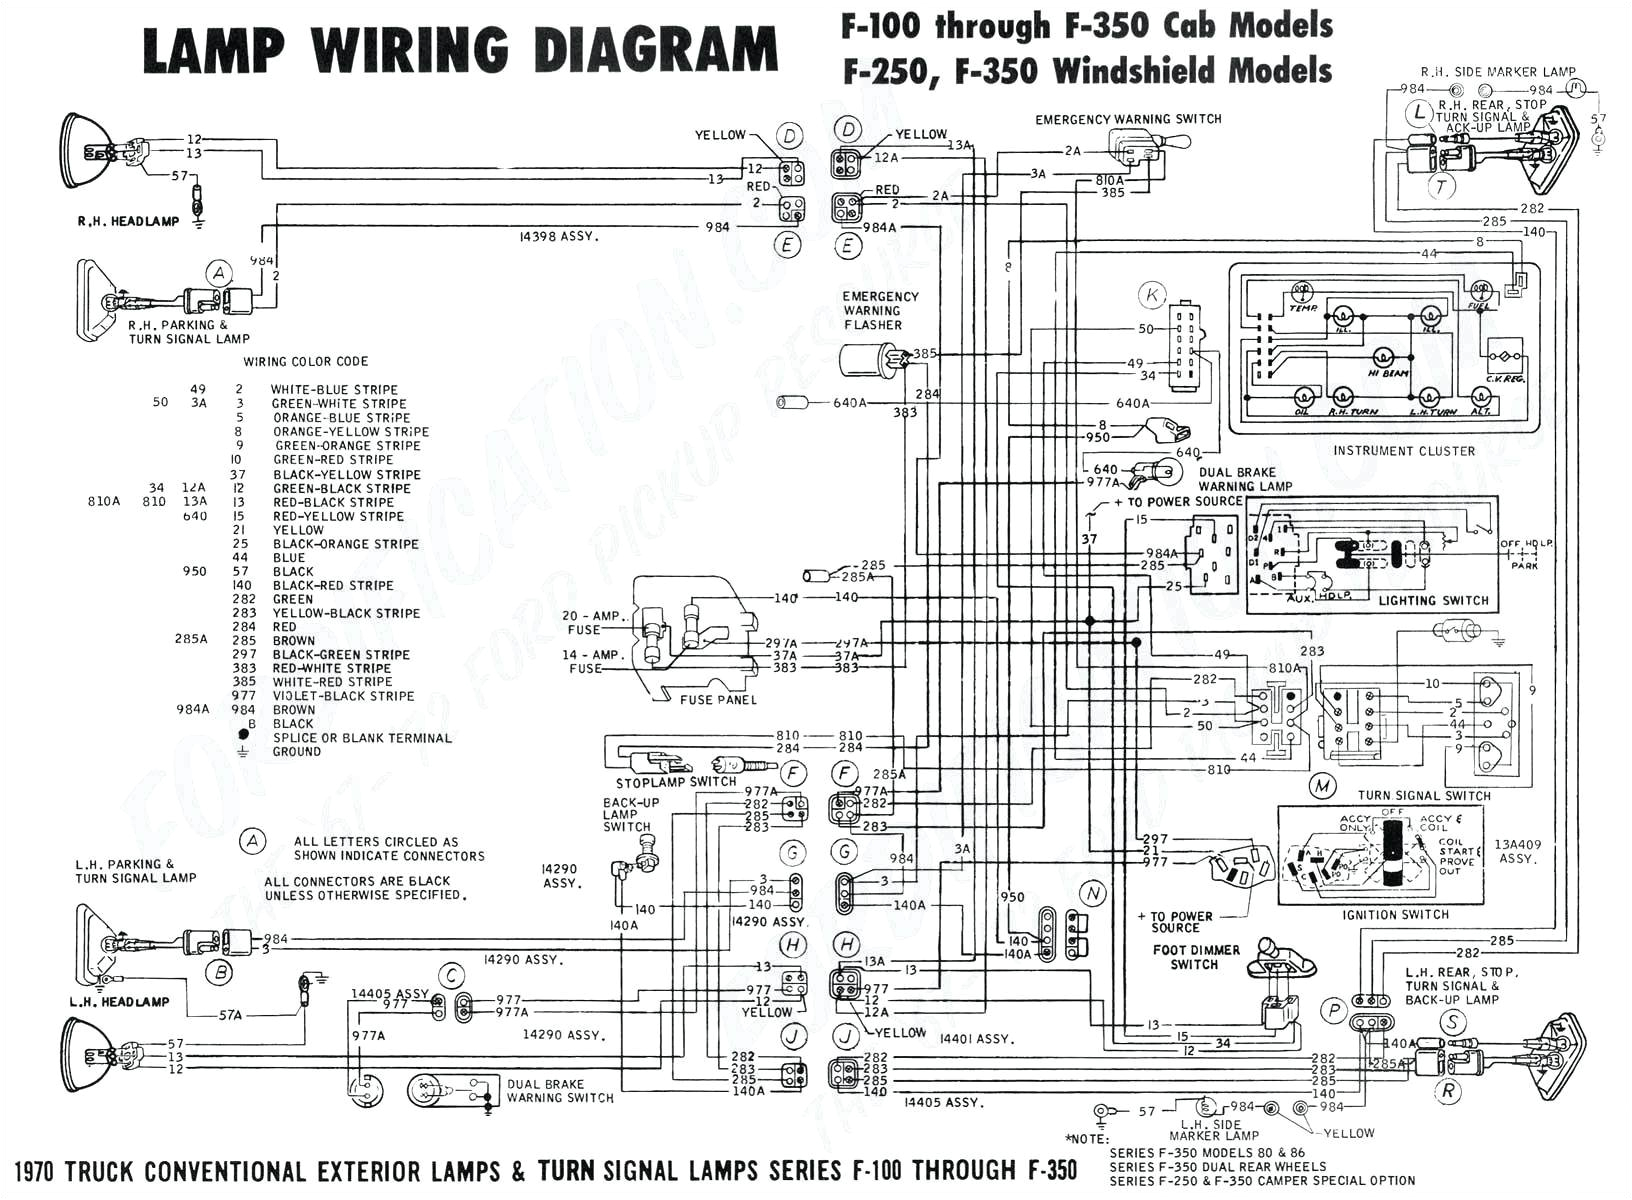 wiring diagram with circuit breaker get free image about wiring 12v circuit breaker wiring diagram free picture